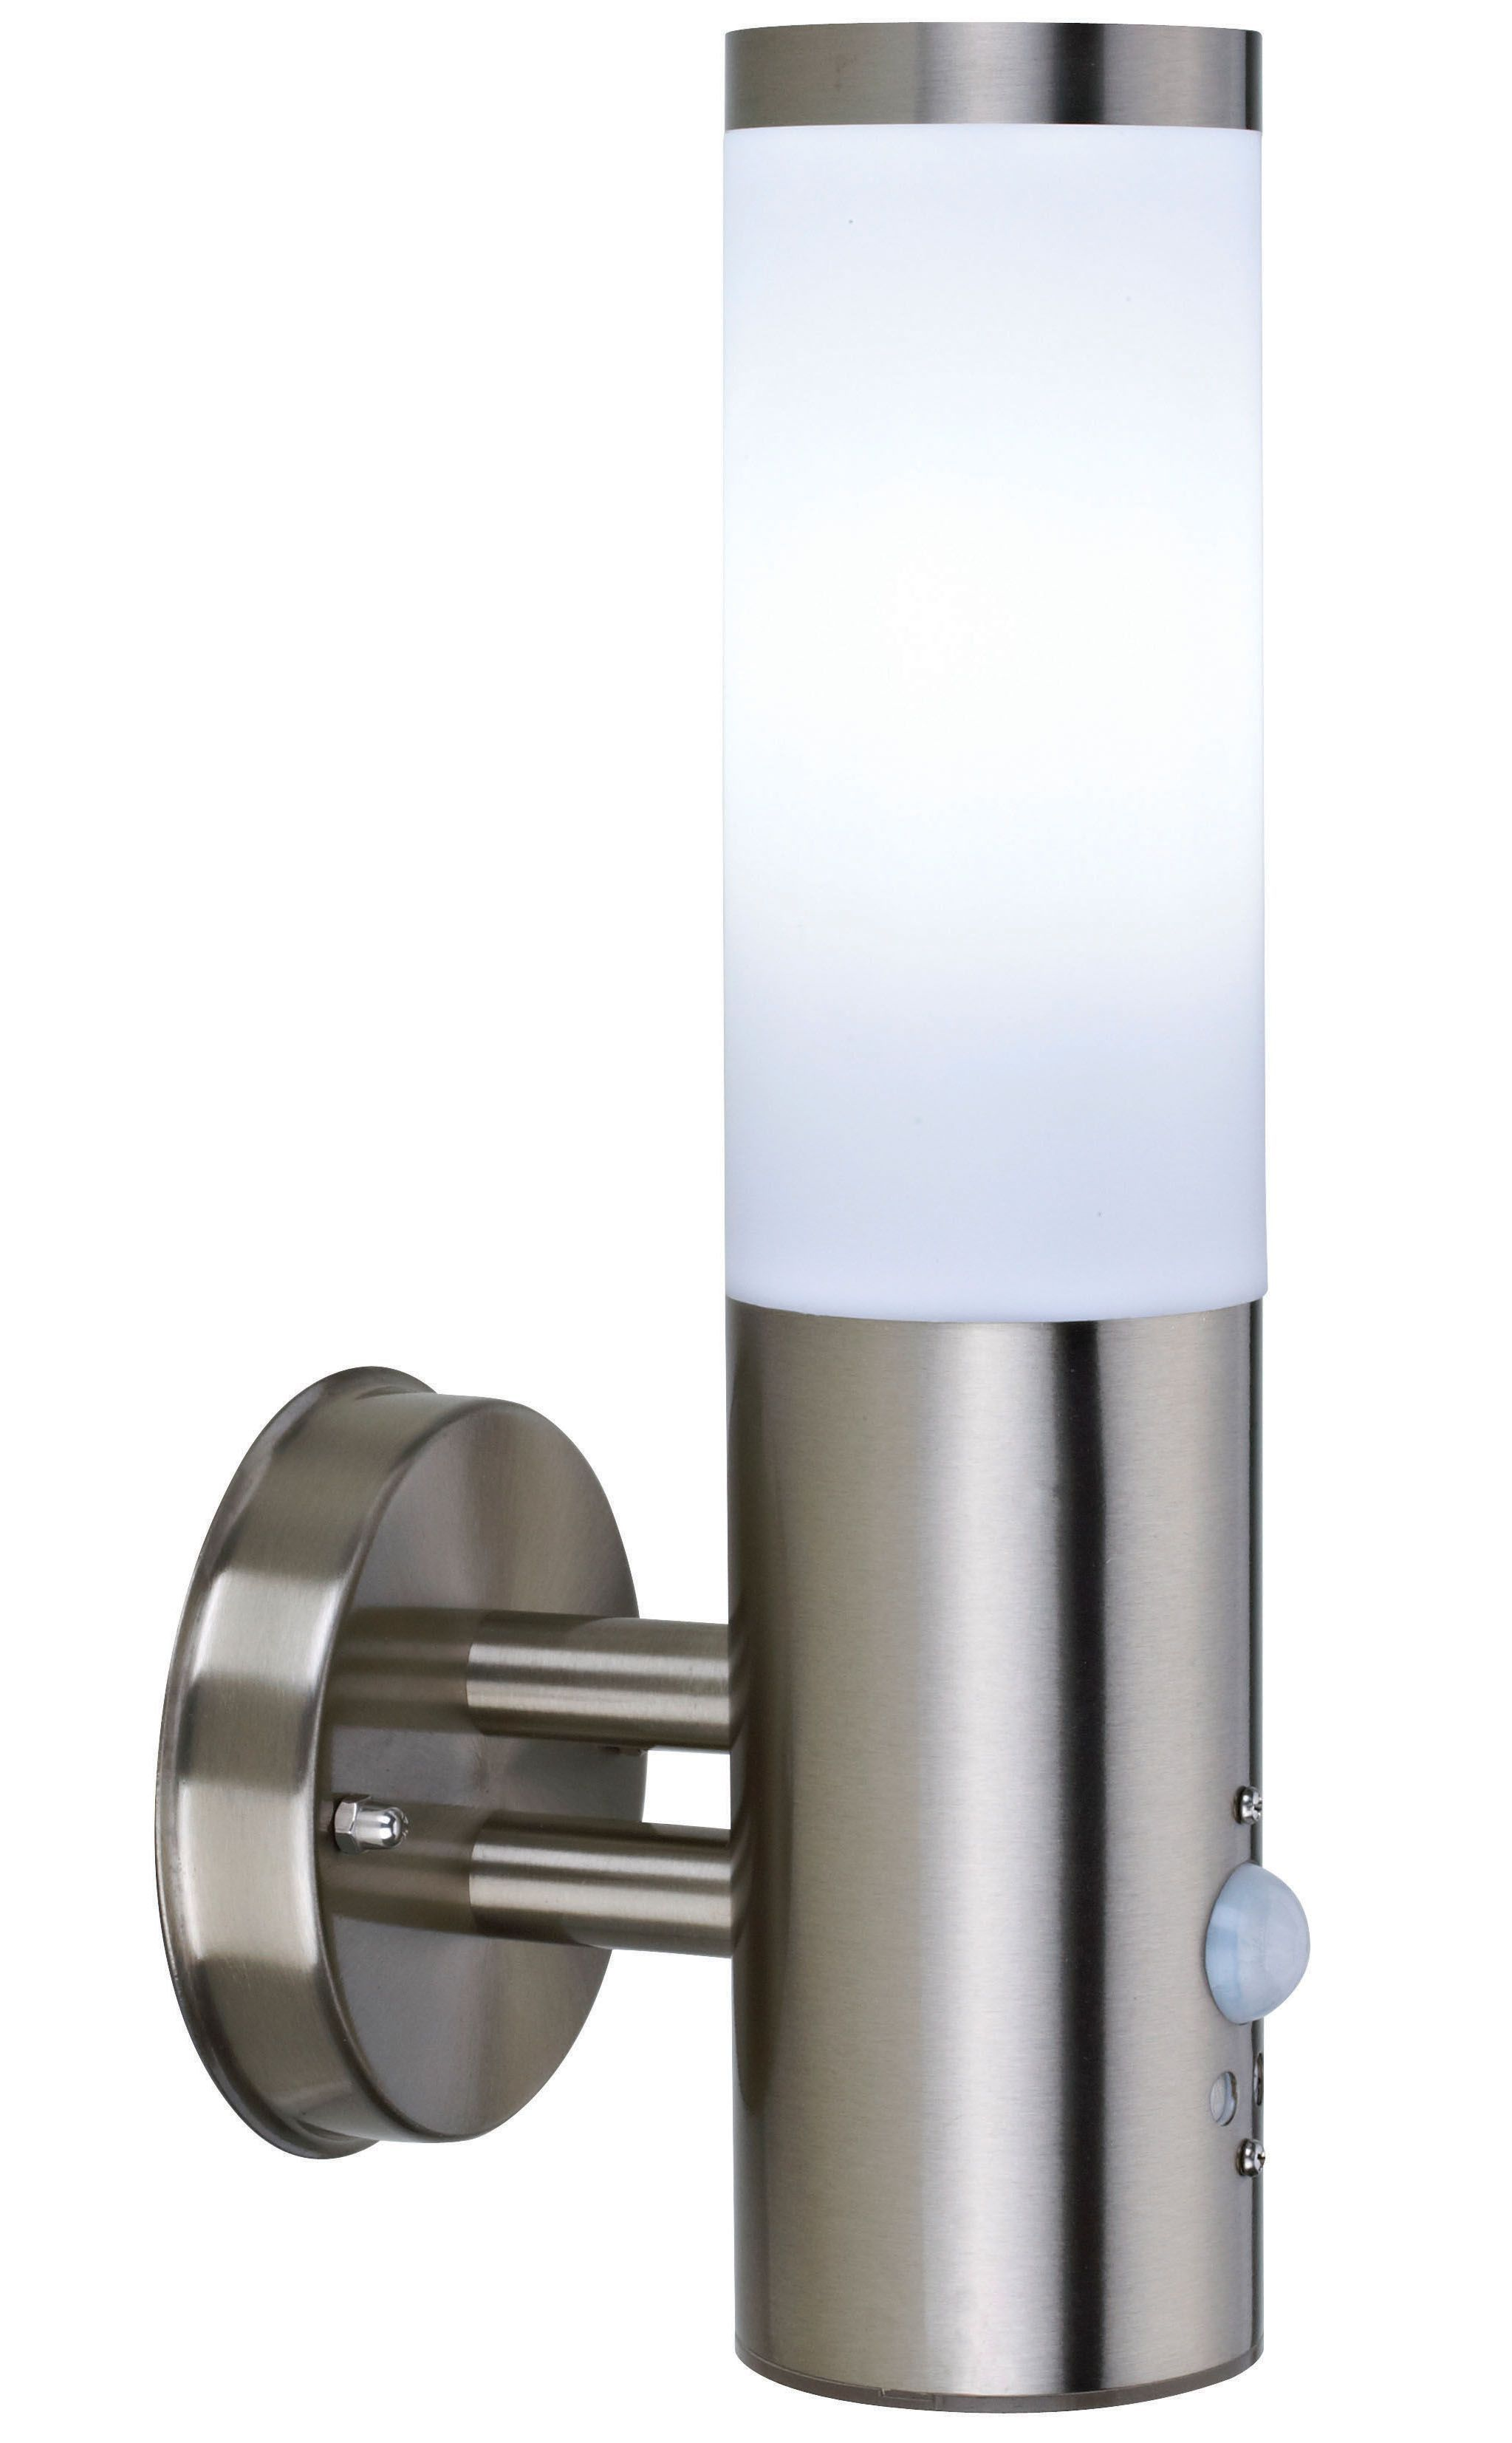 External Wall Lights Pir : Blooma Cano Stainless Steel External Pir Wall Light Departments DIY at B&Q